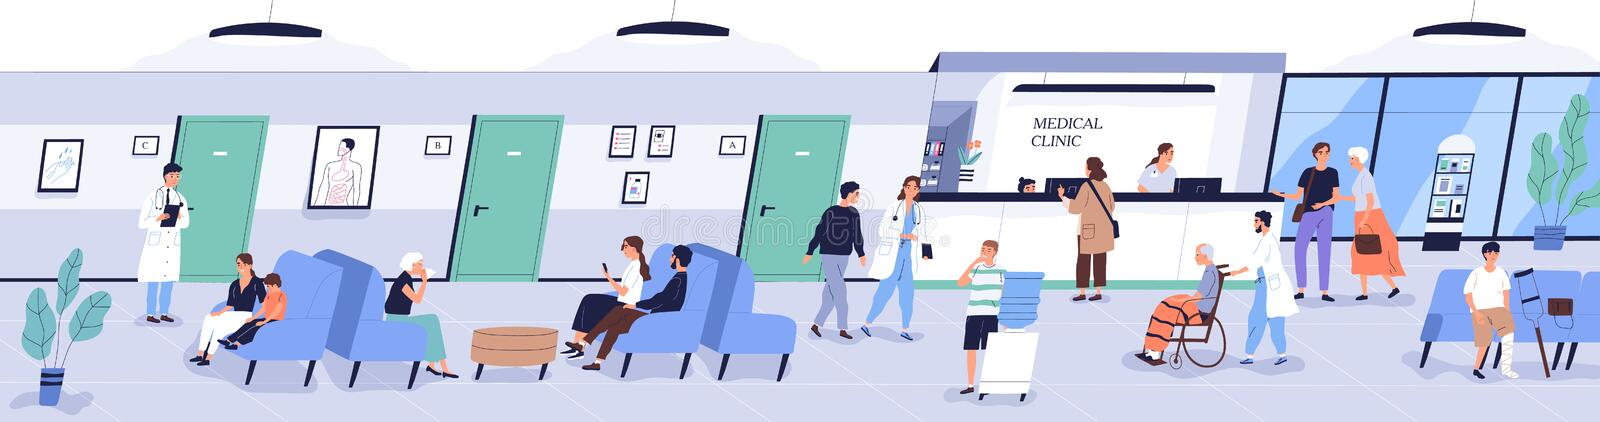 Reception area of medical center or hospital with people or patients waiting for doctor`s appointment. Men, women and stock illustration